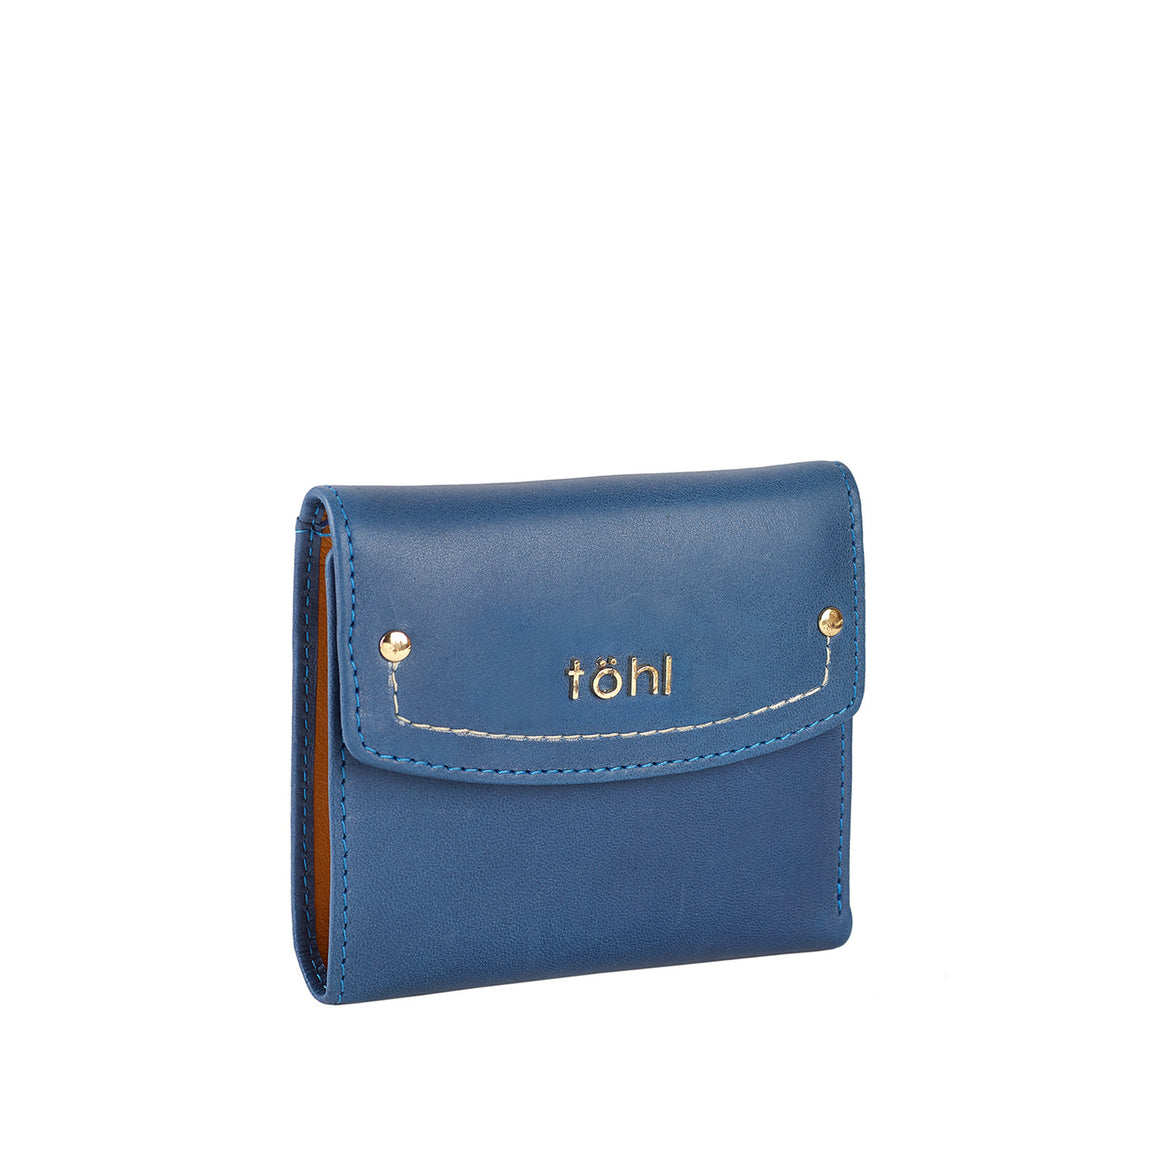 WT 0009 - TOHL STEVIE WOMEN'S COMPACT WALLET - AZURE